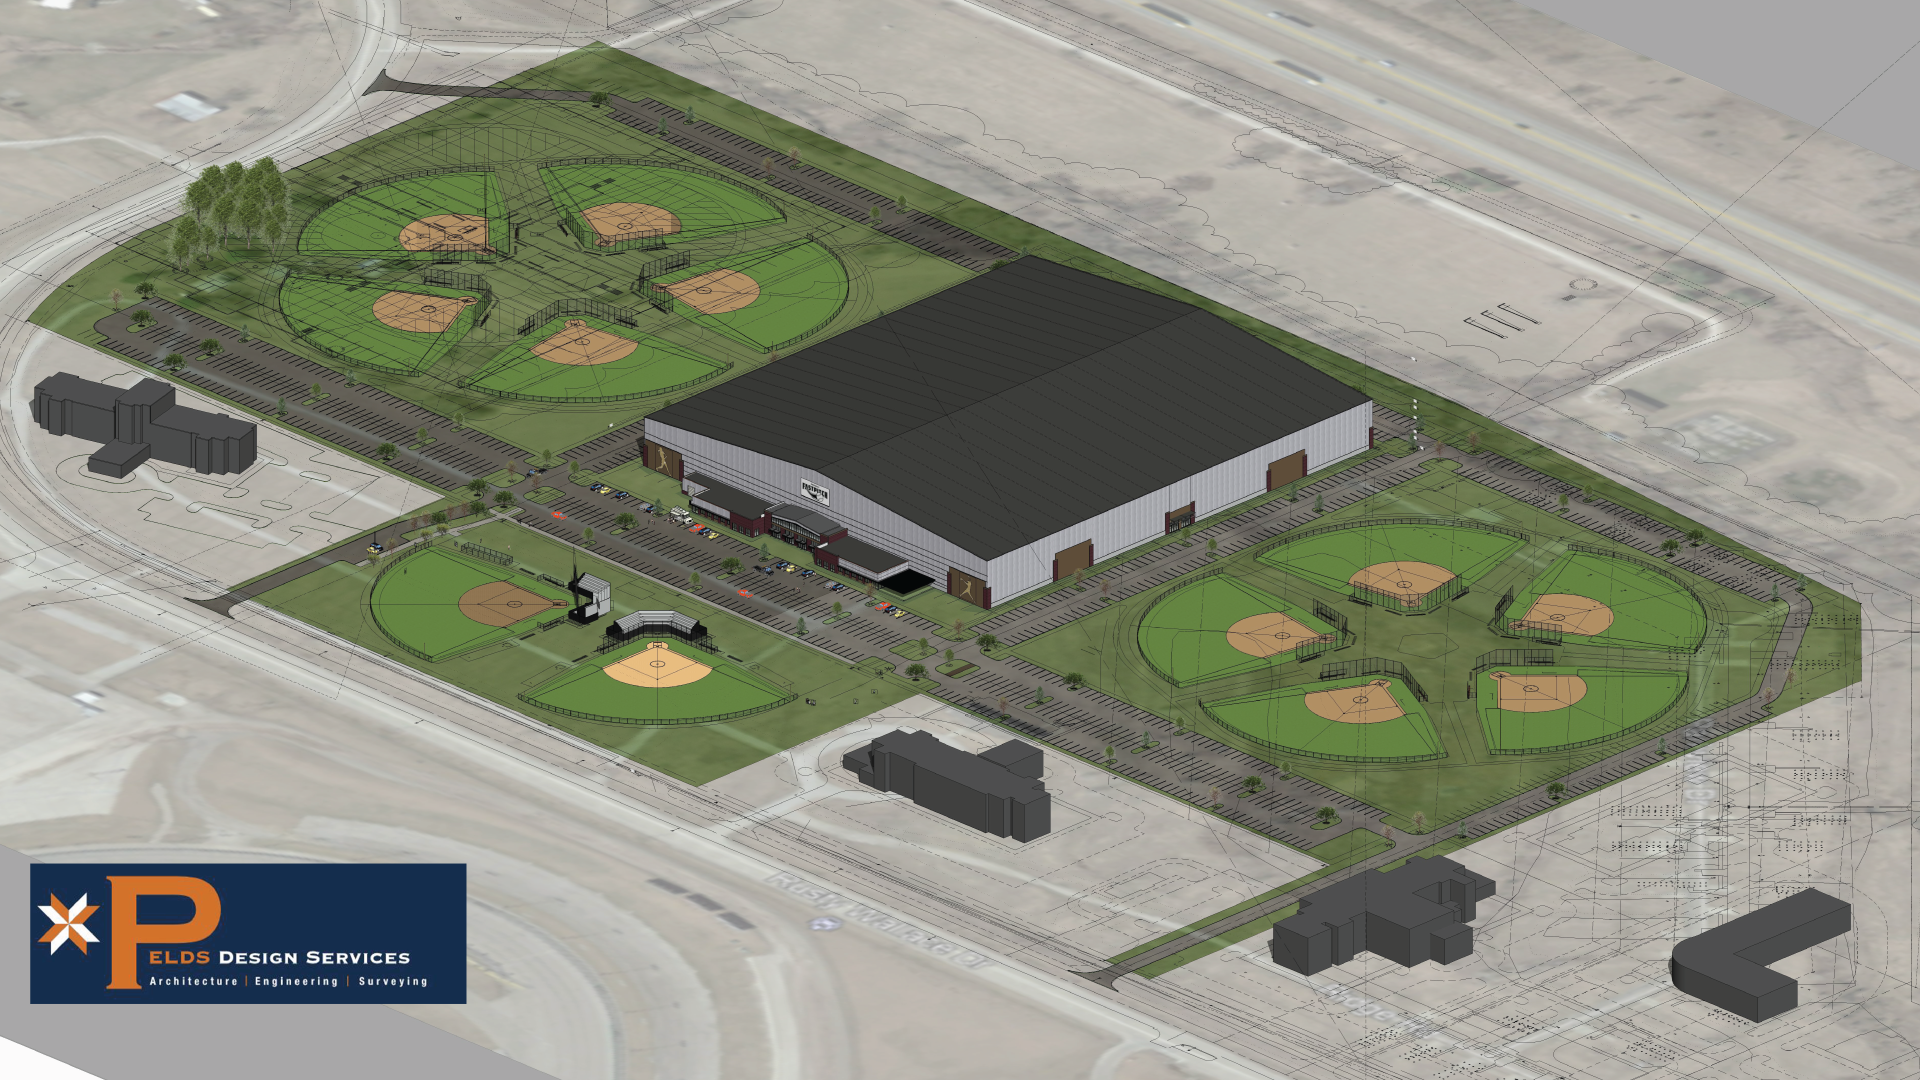 project-fastpitch-aerial-view-worlds-largest-indoor-softball-facility-projectfastpitch.com-01